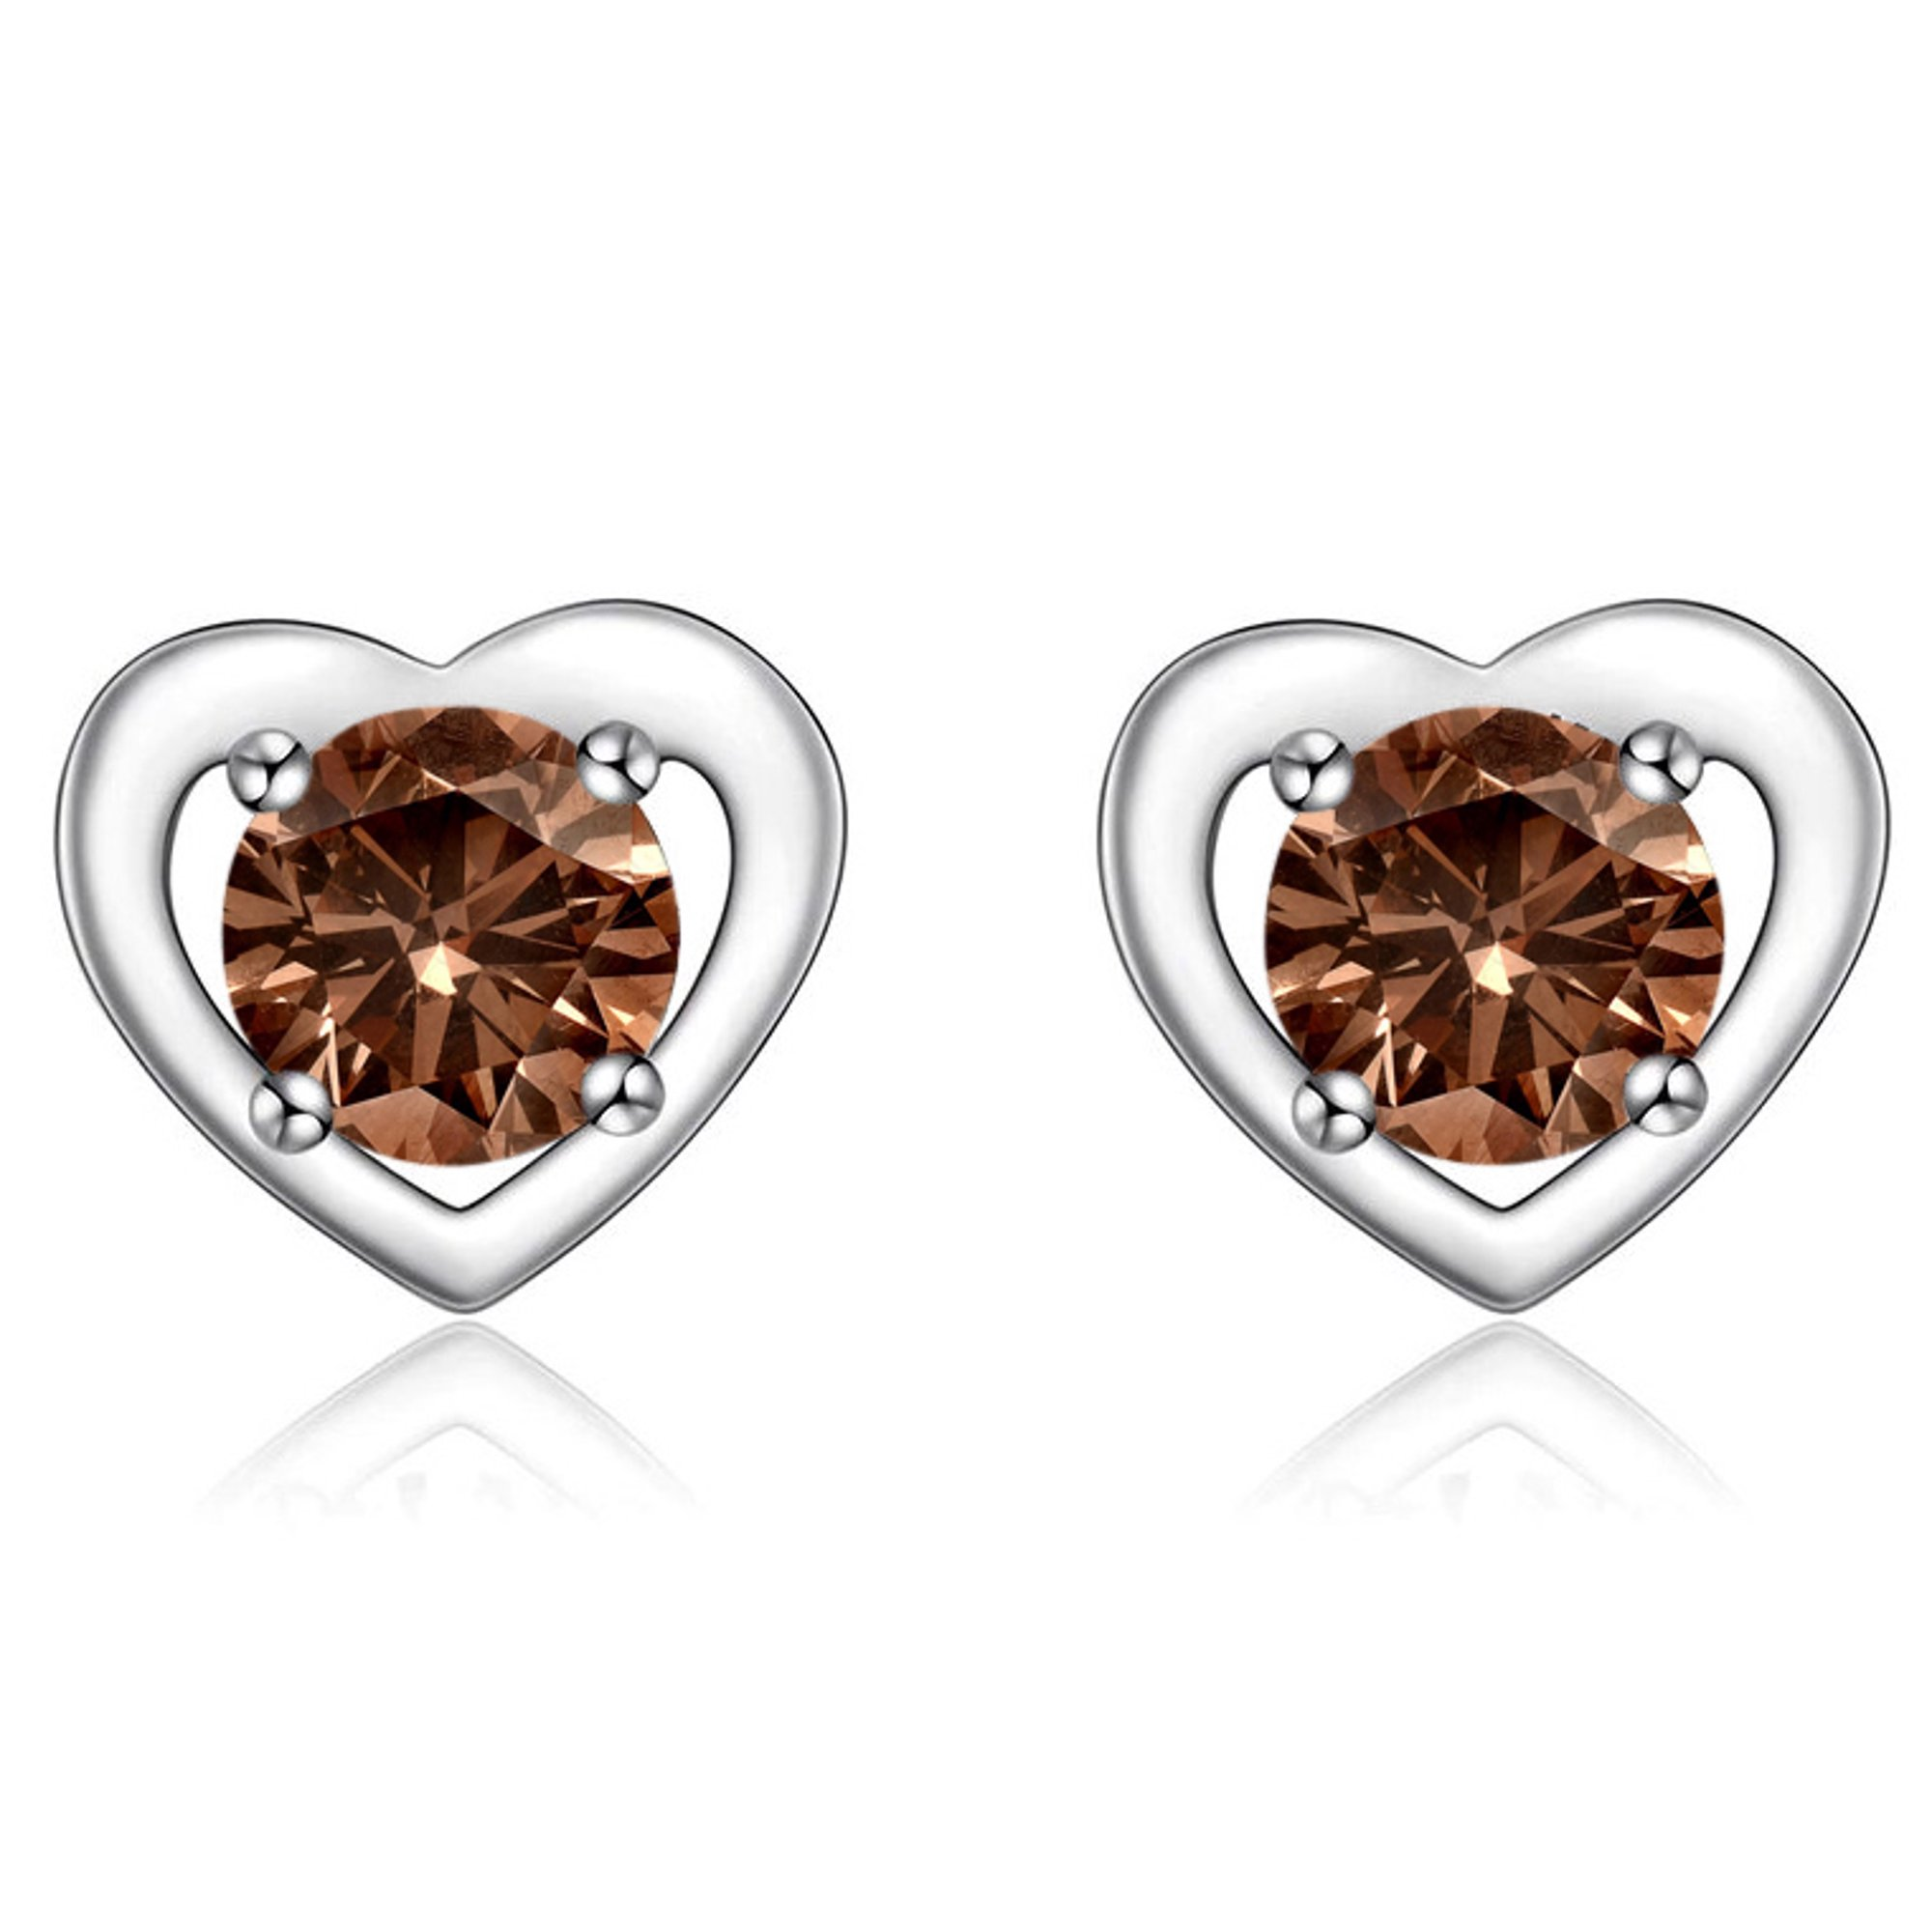 Heart Shape 50 Carat Round Brilliant Brown Diamond Stud Earrings In 10k White Gold Walmart Canada